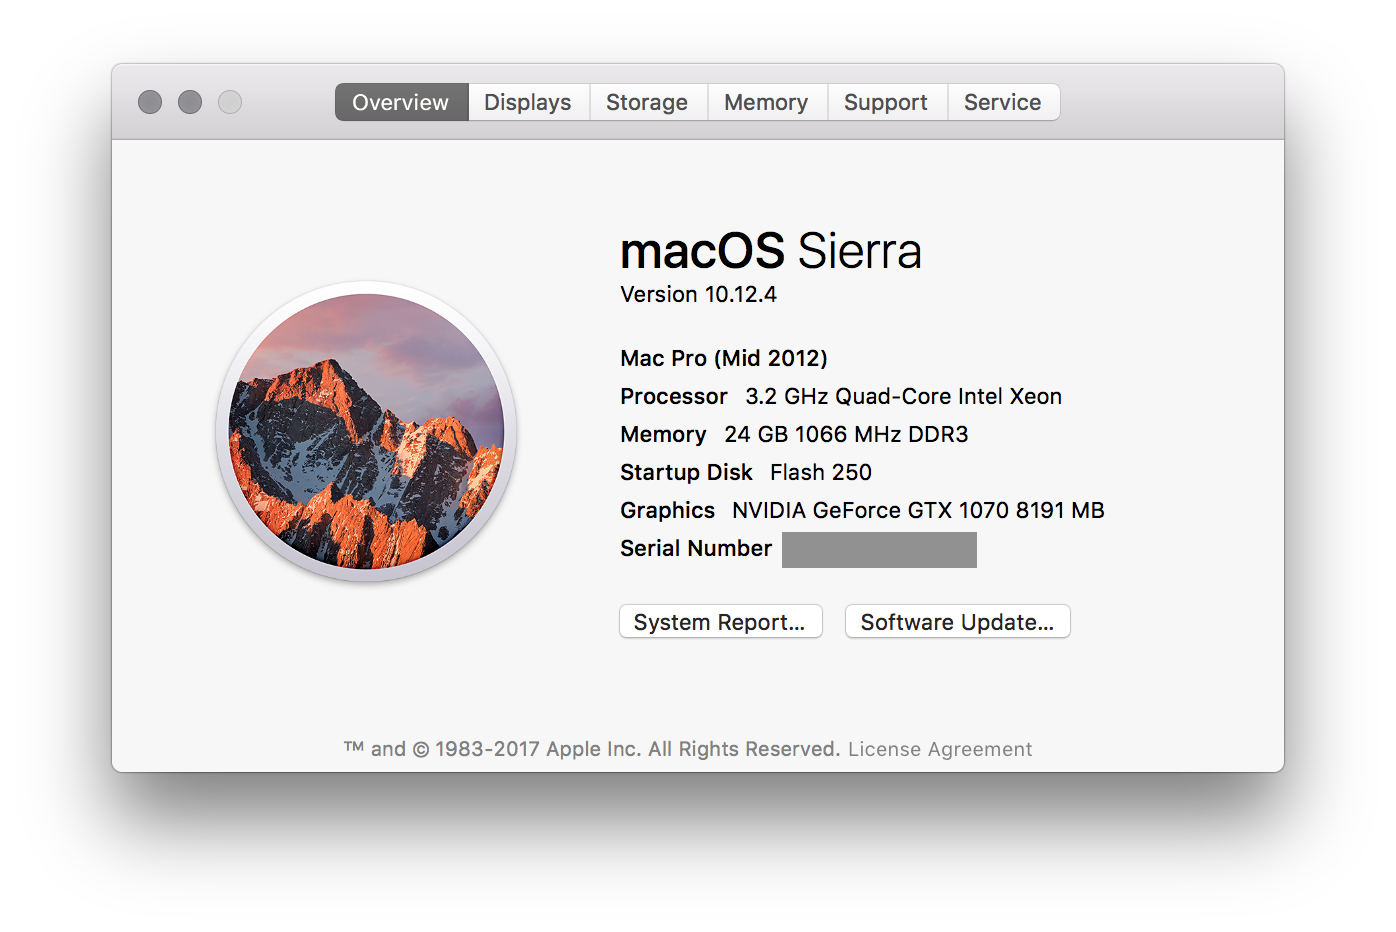 Getting an Nvidia 1070 (or similar) GPU working on a Mac Pro